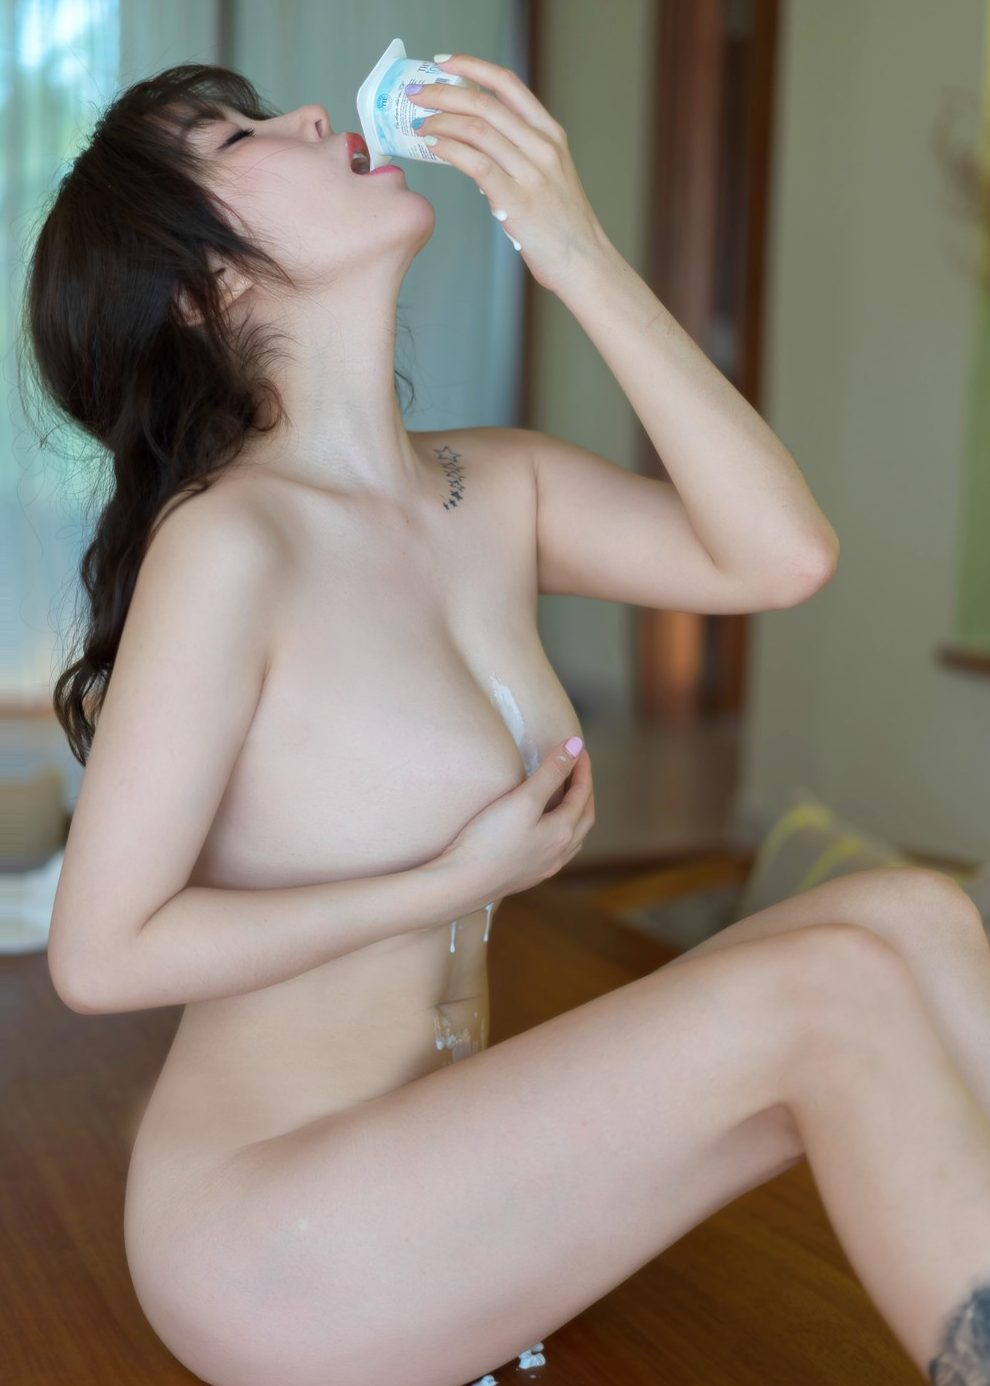 wang yu chun naked lick her sexy body wants to fuck